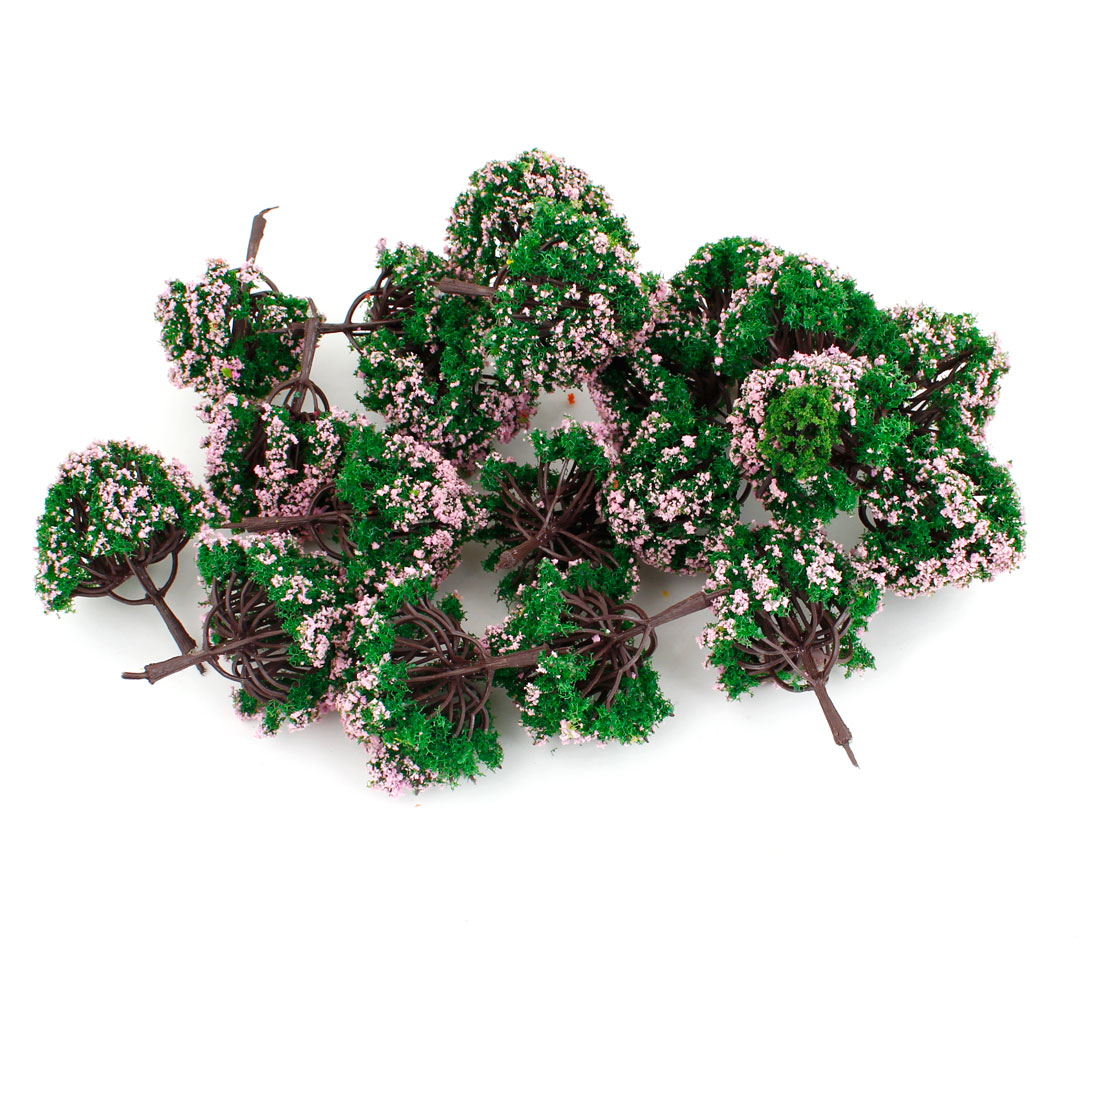 20 Pcs Simulation Pink Green Plastic Model Flower Tree 7cm High Scale 1:100